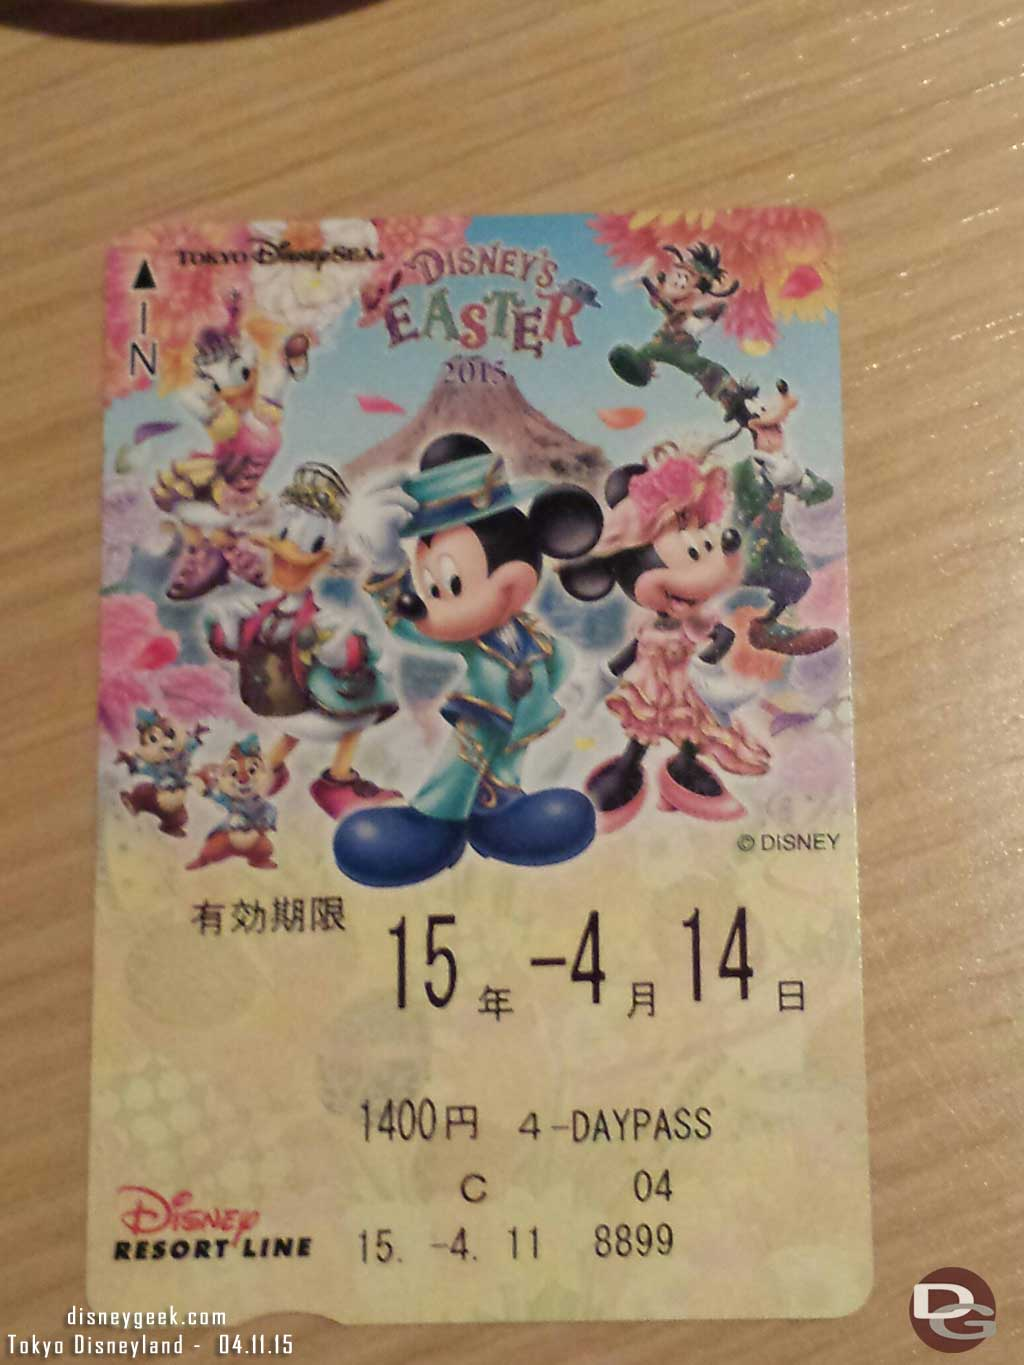 #TokyoDisney Resort Line easter ticket